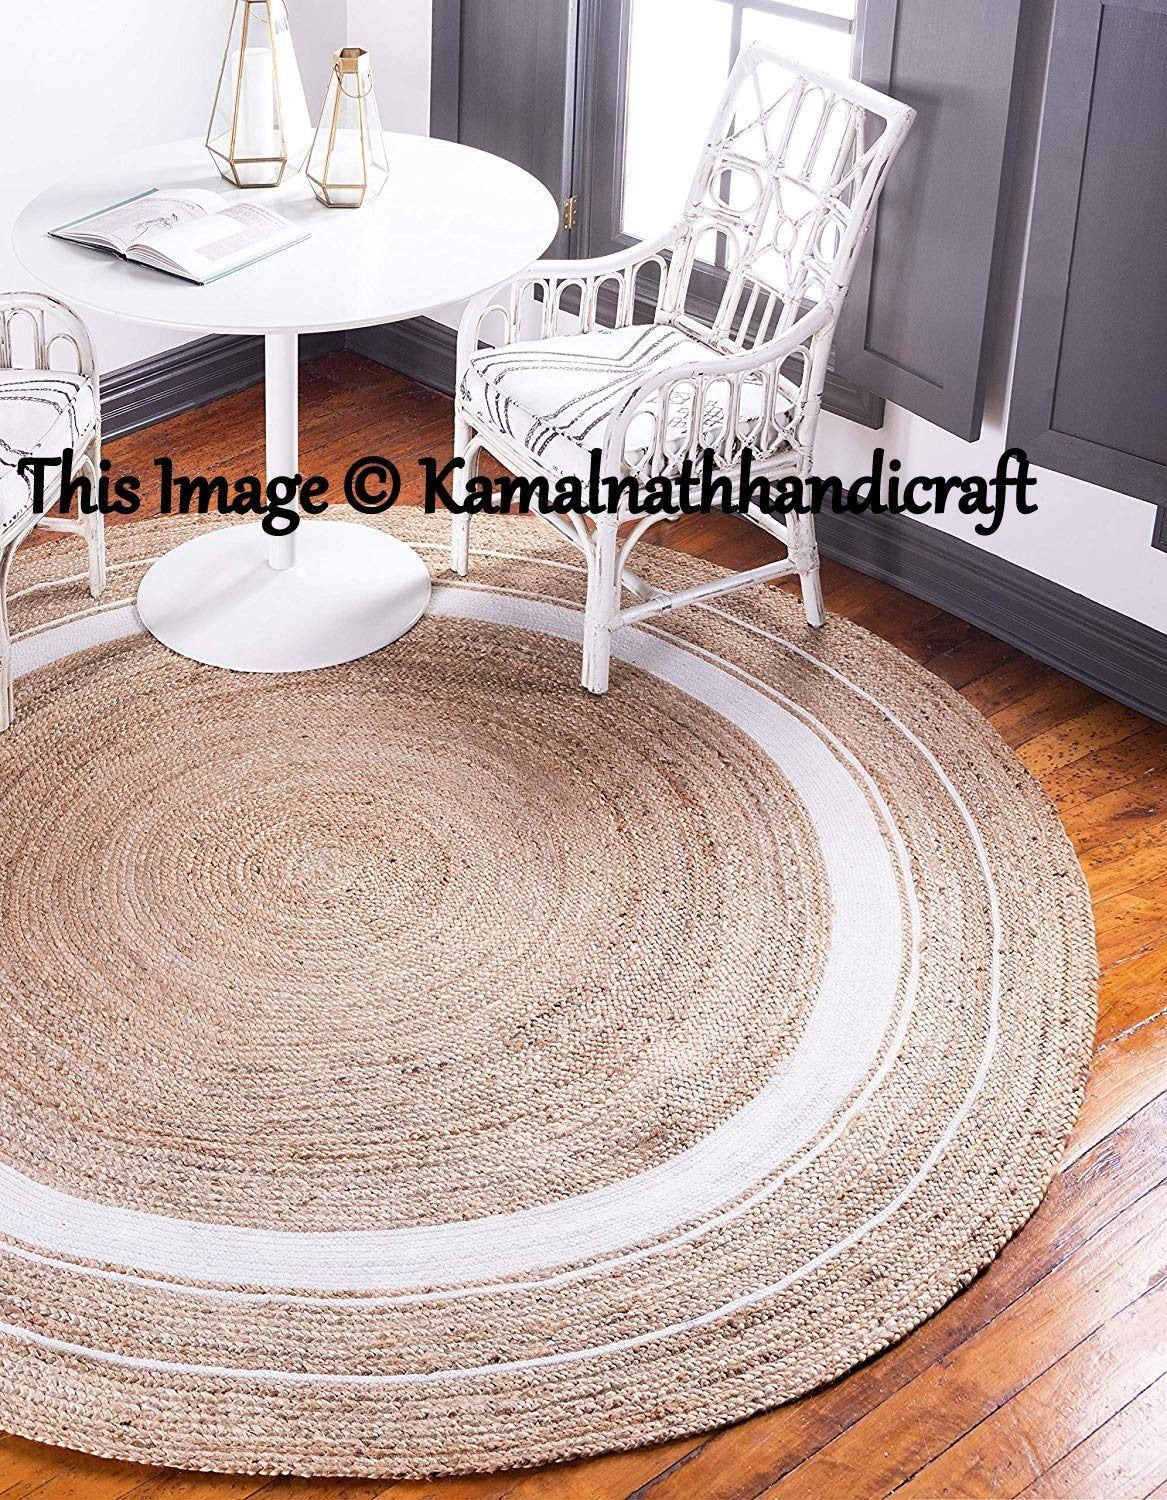 Indian Hand Braided Bohemian White Dye Round Jute Area Rug Natural Carpet Jute Round Rug Area Rugs Floor Rugs Custom Size Available In 2020 Jute Round Rug Natural Rug Jute Area Rugs